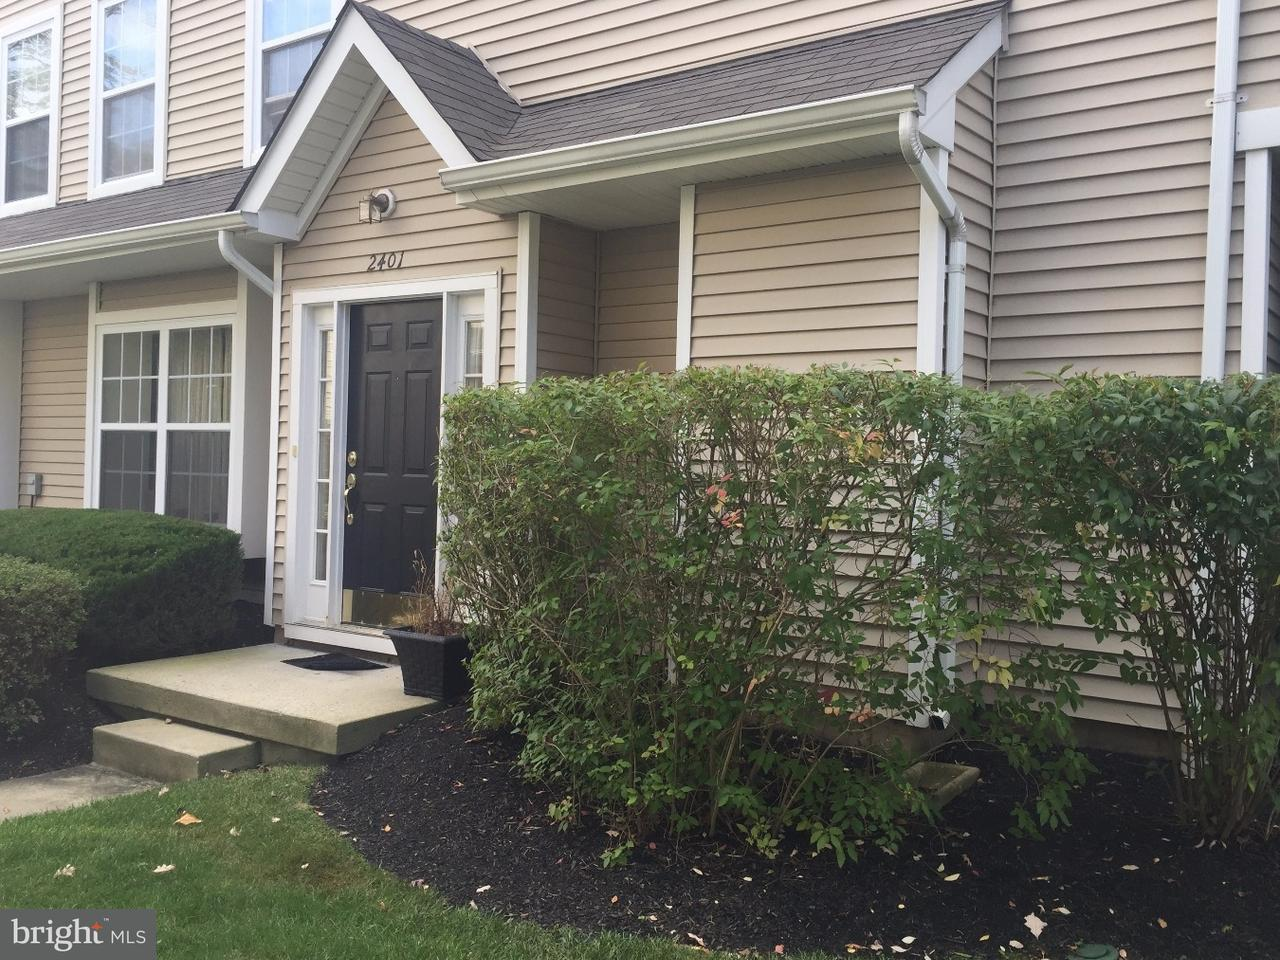 Condominium for Rent at 2401 DELANCEY WAY Marlton, New Jersey 08053 United States